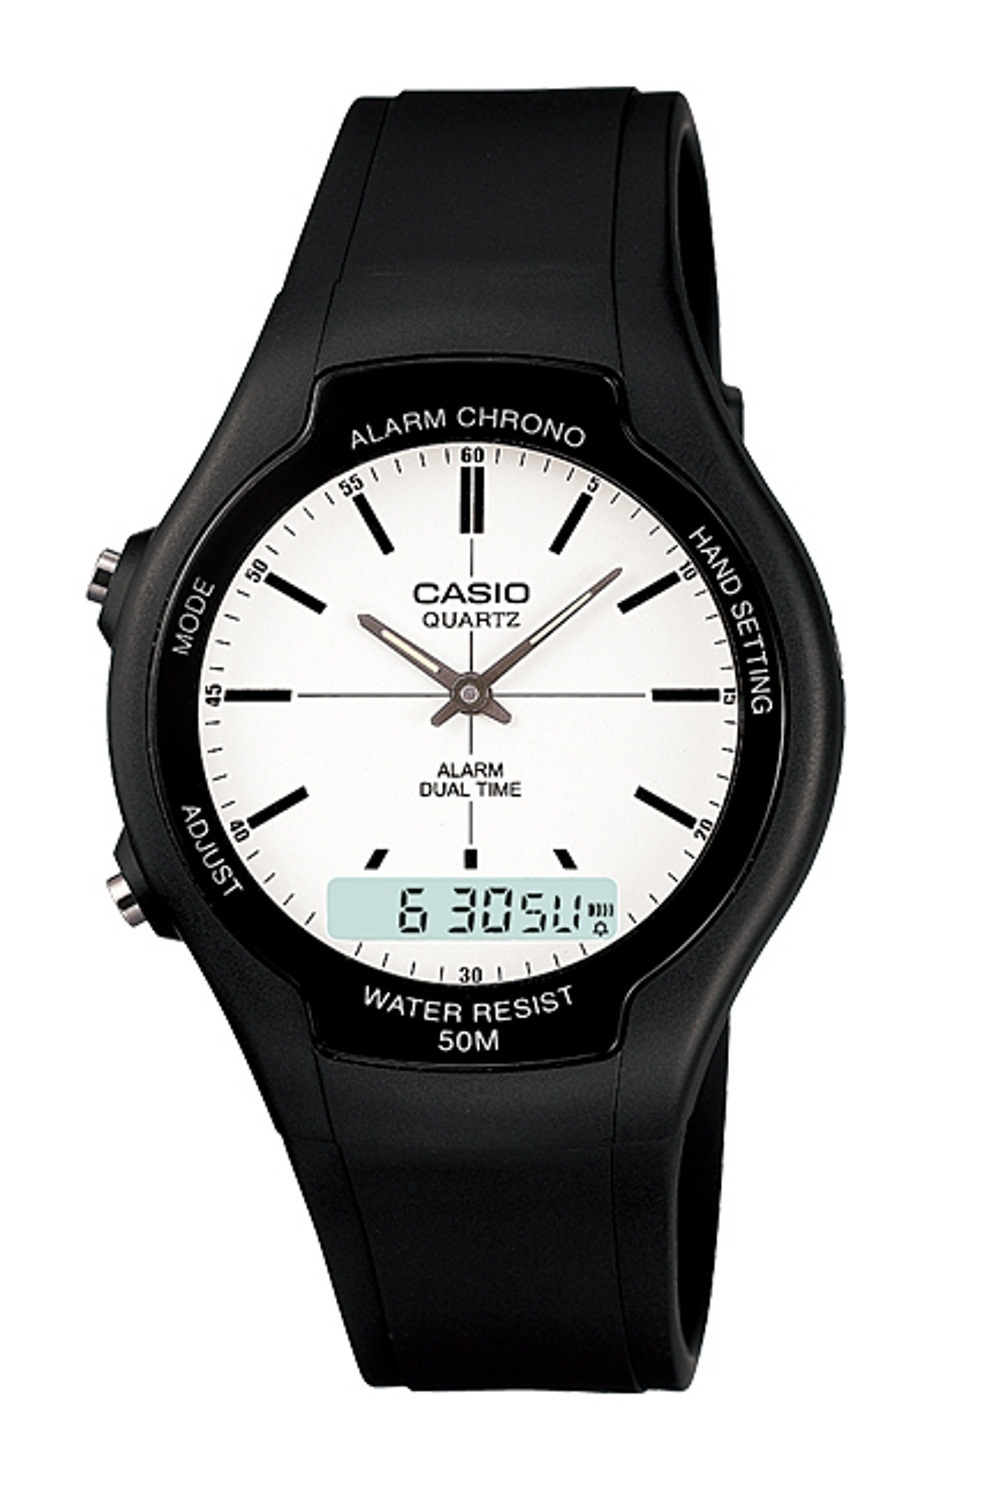 ... Tali Source · Casio Analog Digital Watch AW 90H 7EVDF Jam Tangan Unisex Karet